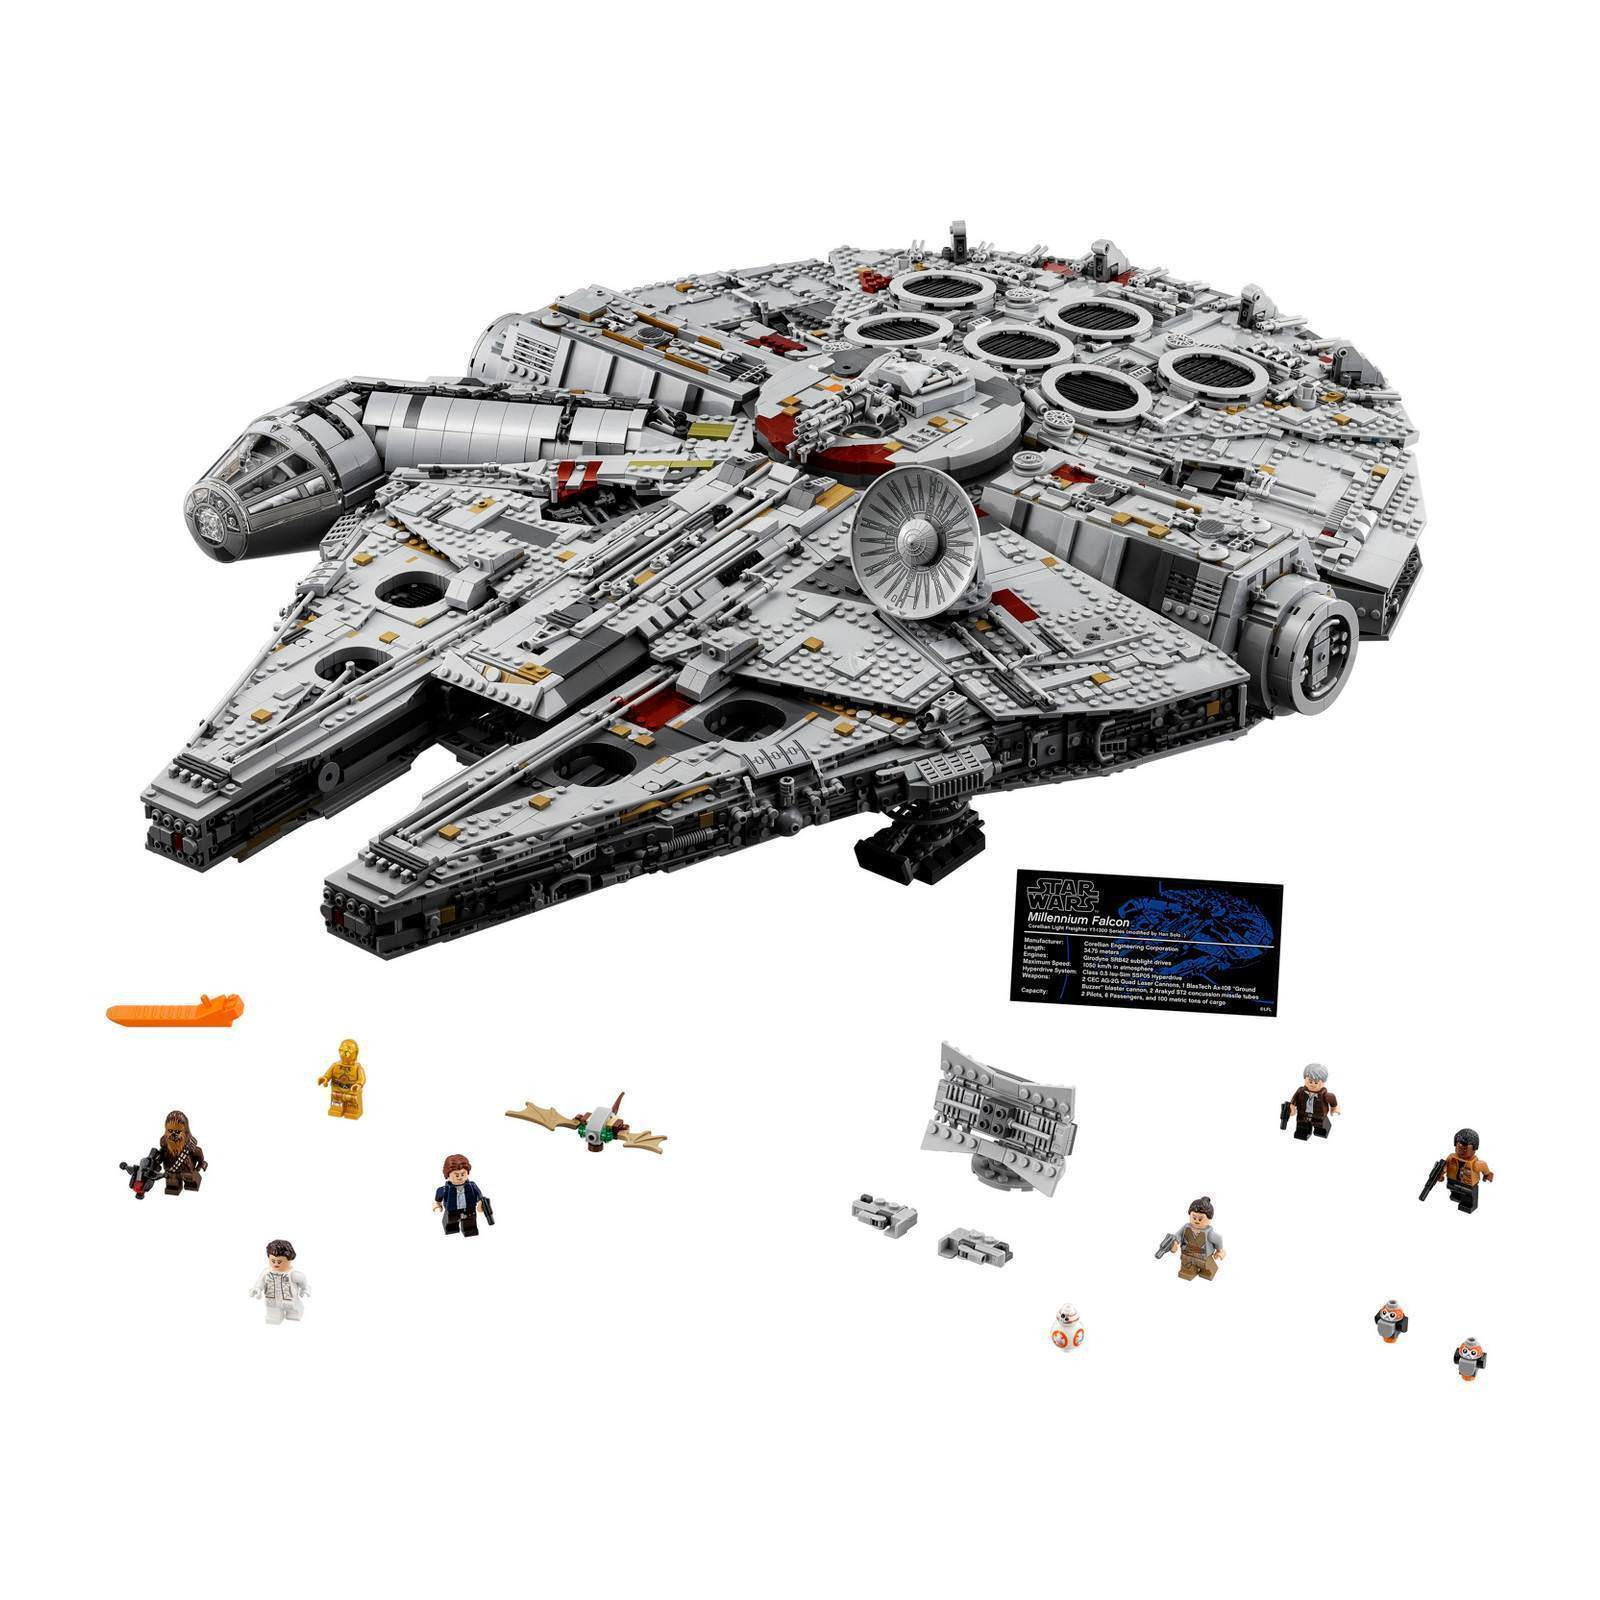 BRAND NEW LEGO Star Wars Ultimate Millennium Falcon 2017 (75192), SHIPS FAST